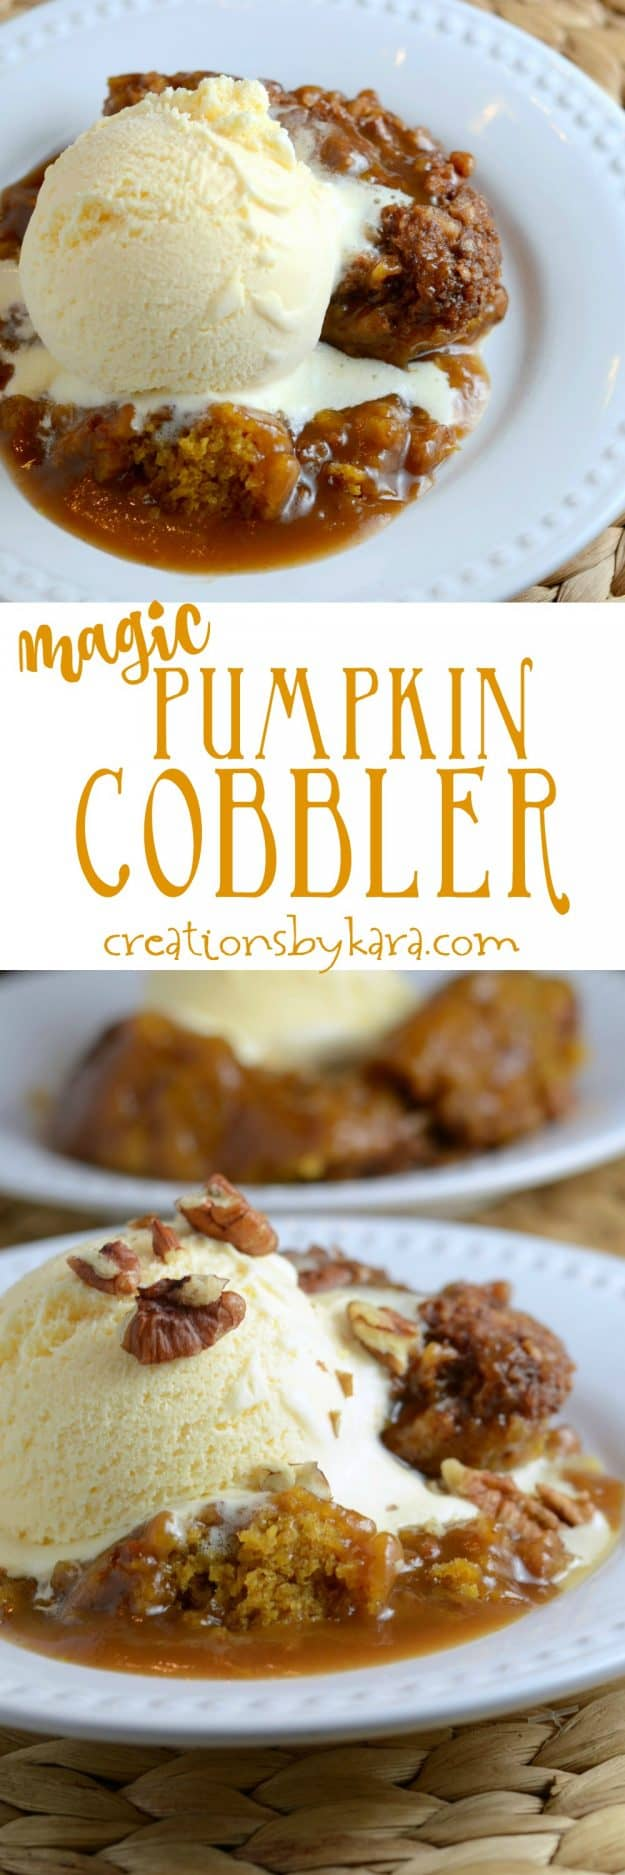 easy pumpkin cobbler recipe collage